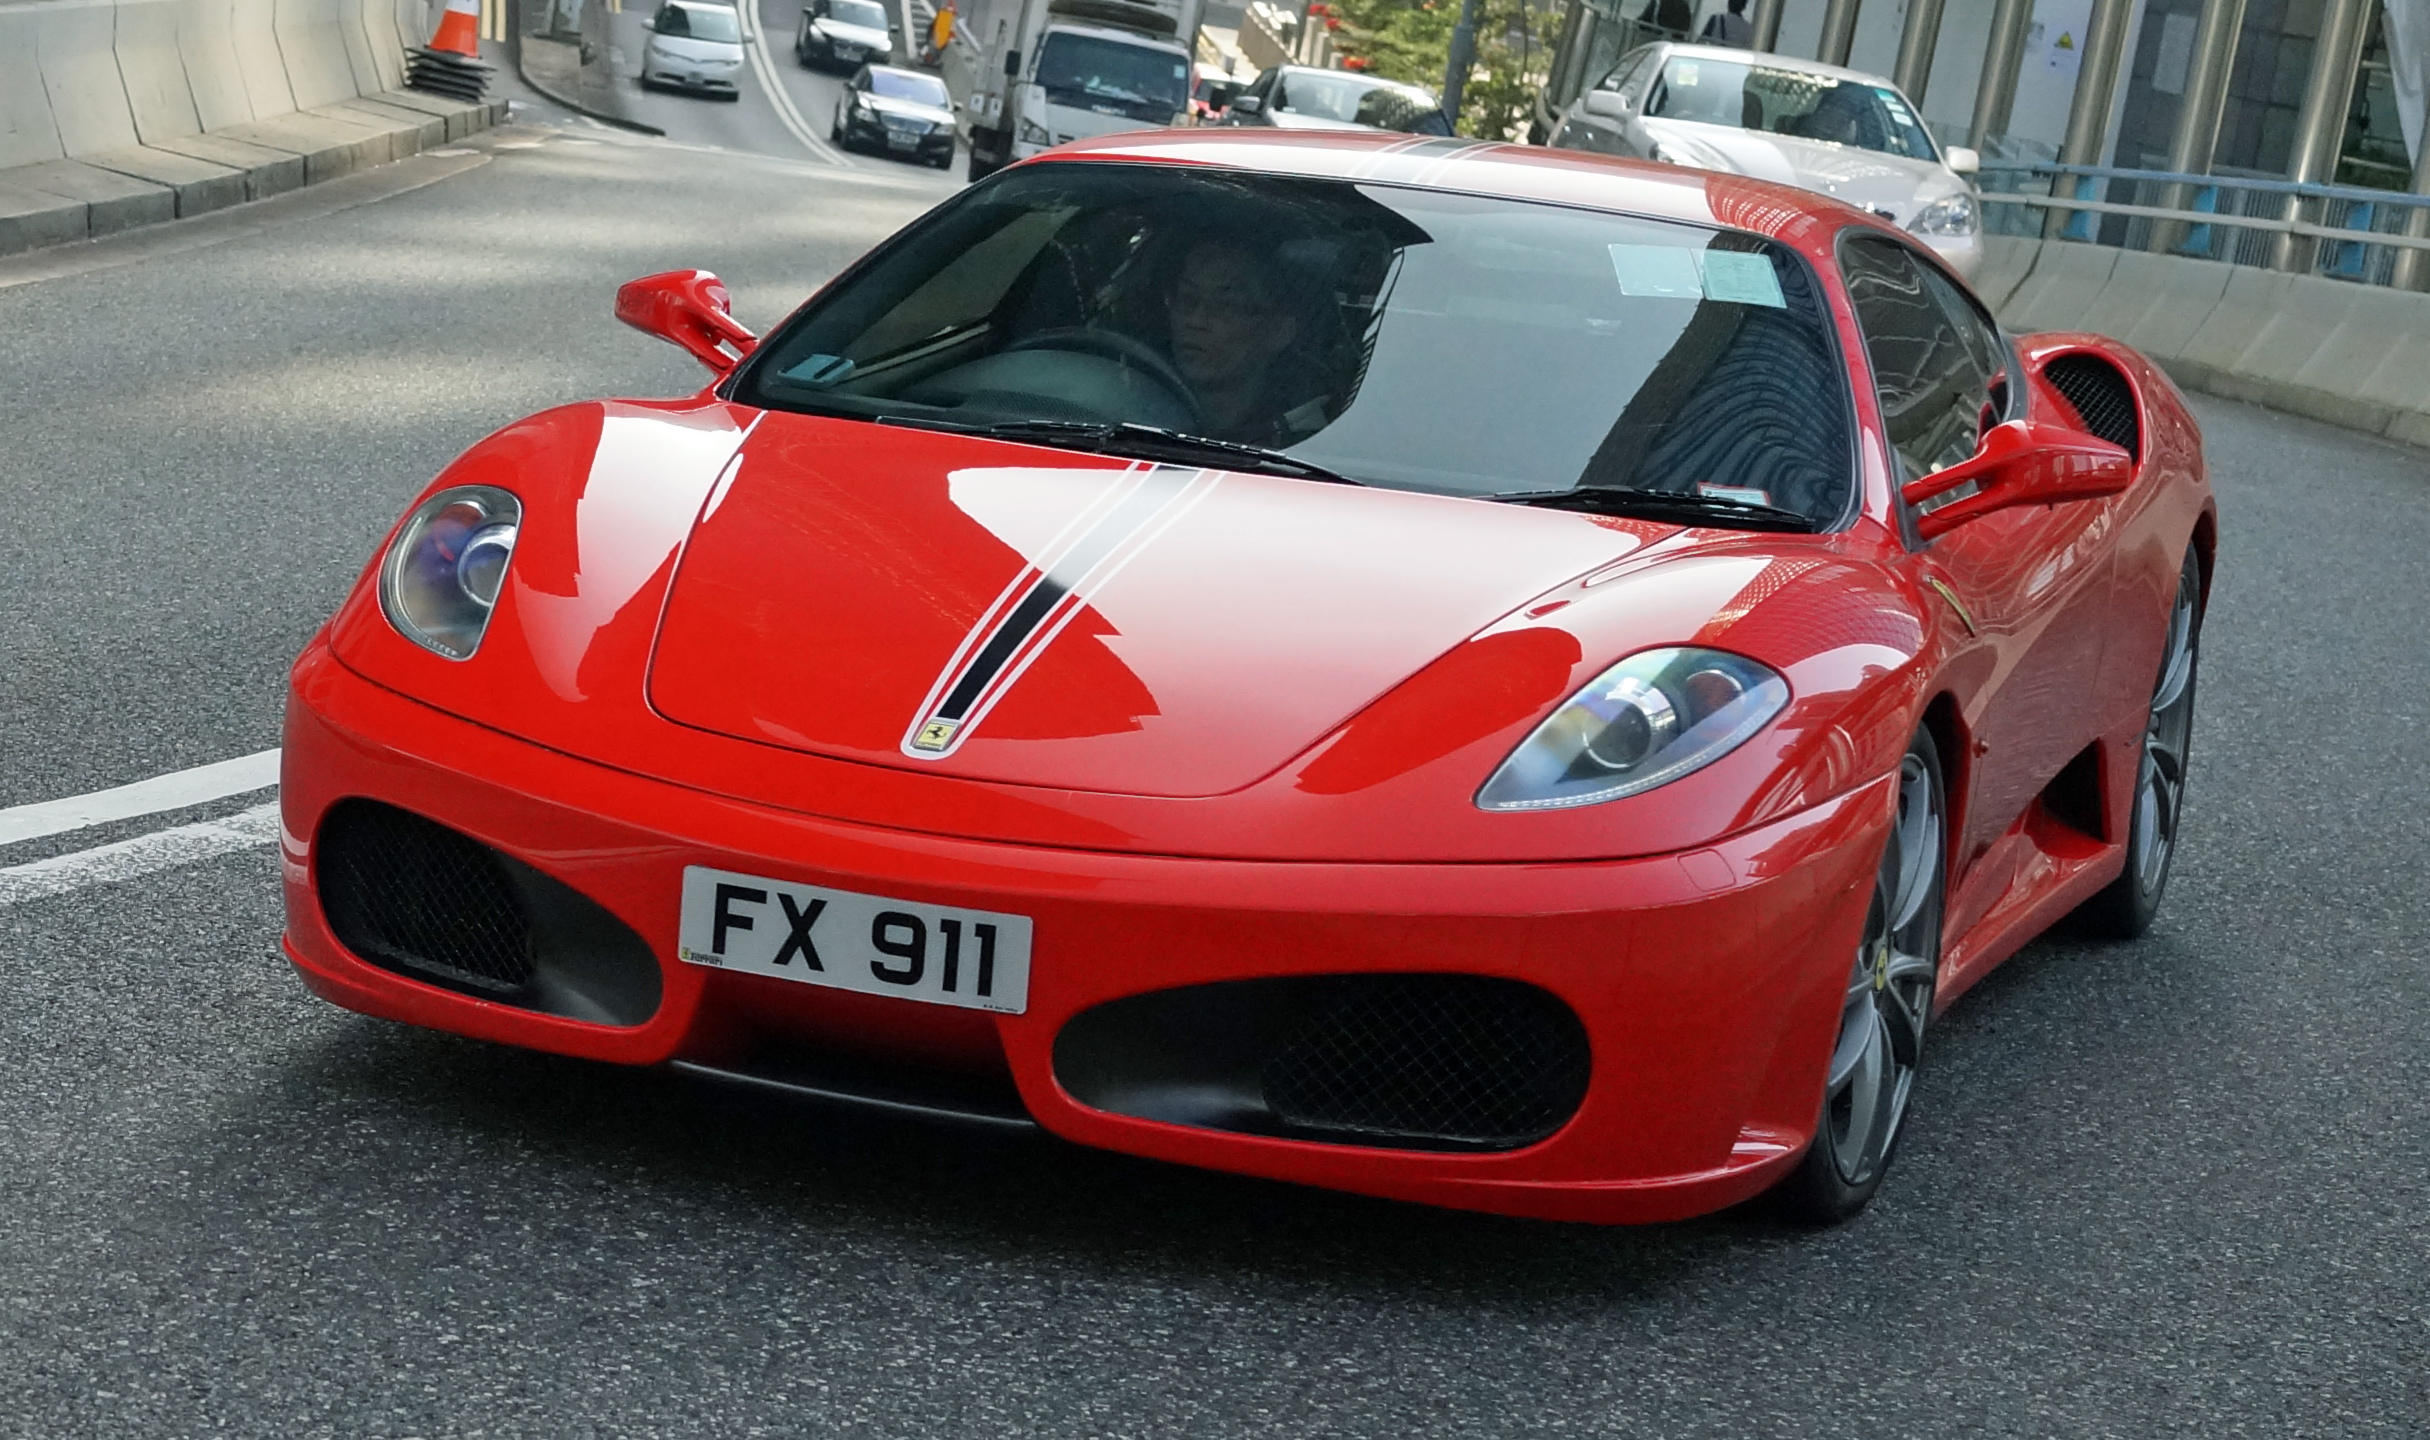 Ferrari, a somewhat legendary car and I love them but in Hong Kong they just seem to be too common and there is something inherently wrong with a 4 year old child strapped in the front seat!! (a common sight here)